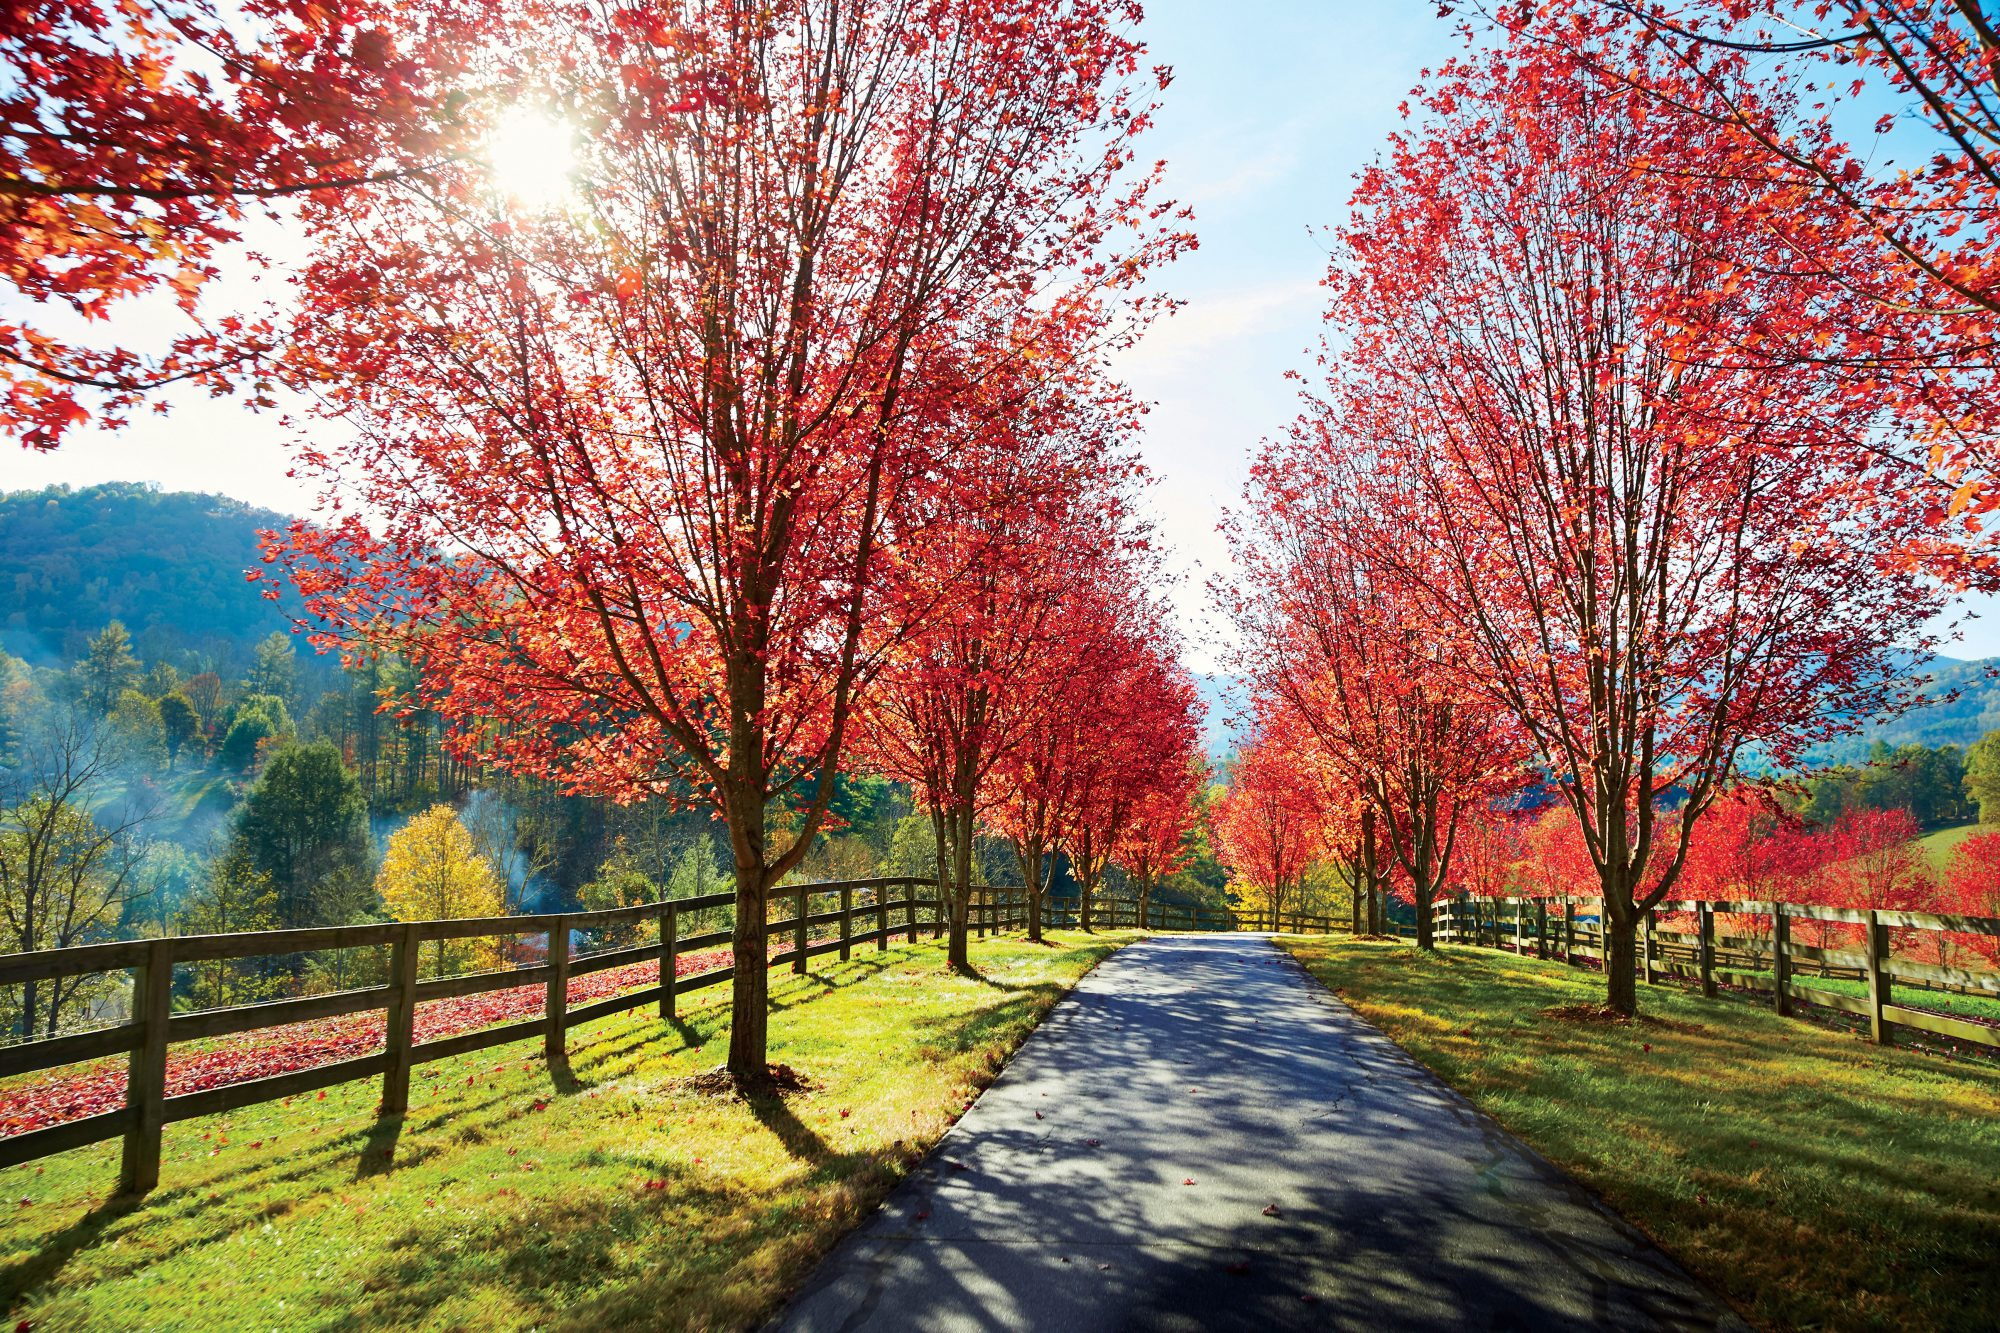 Red Trees at Barkley's Mill in North Carolina